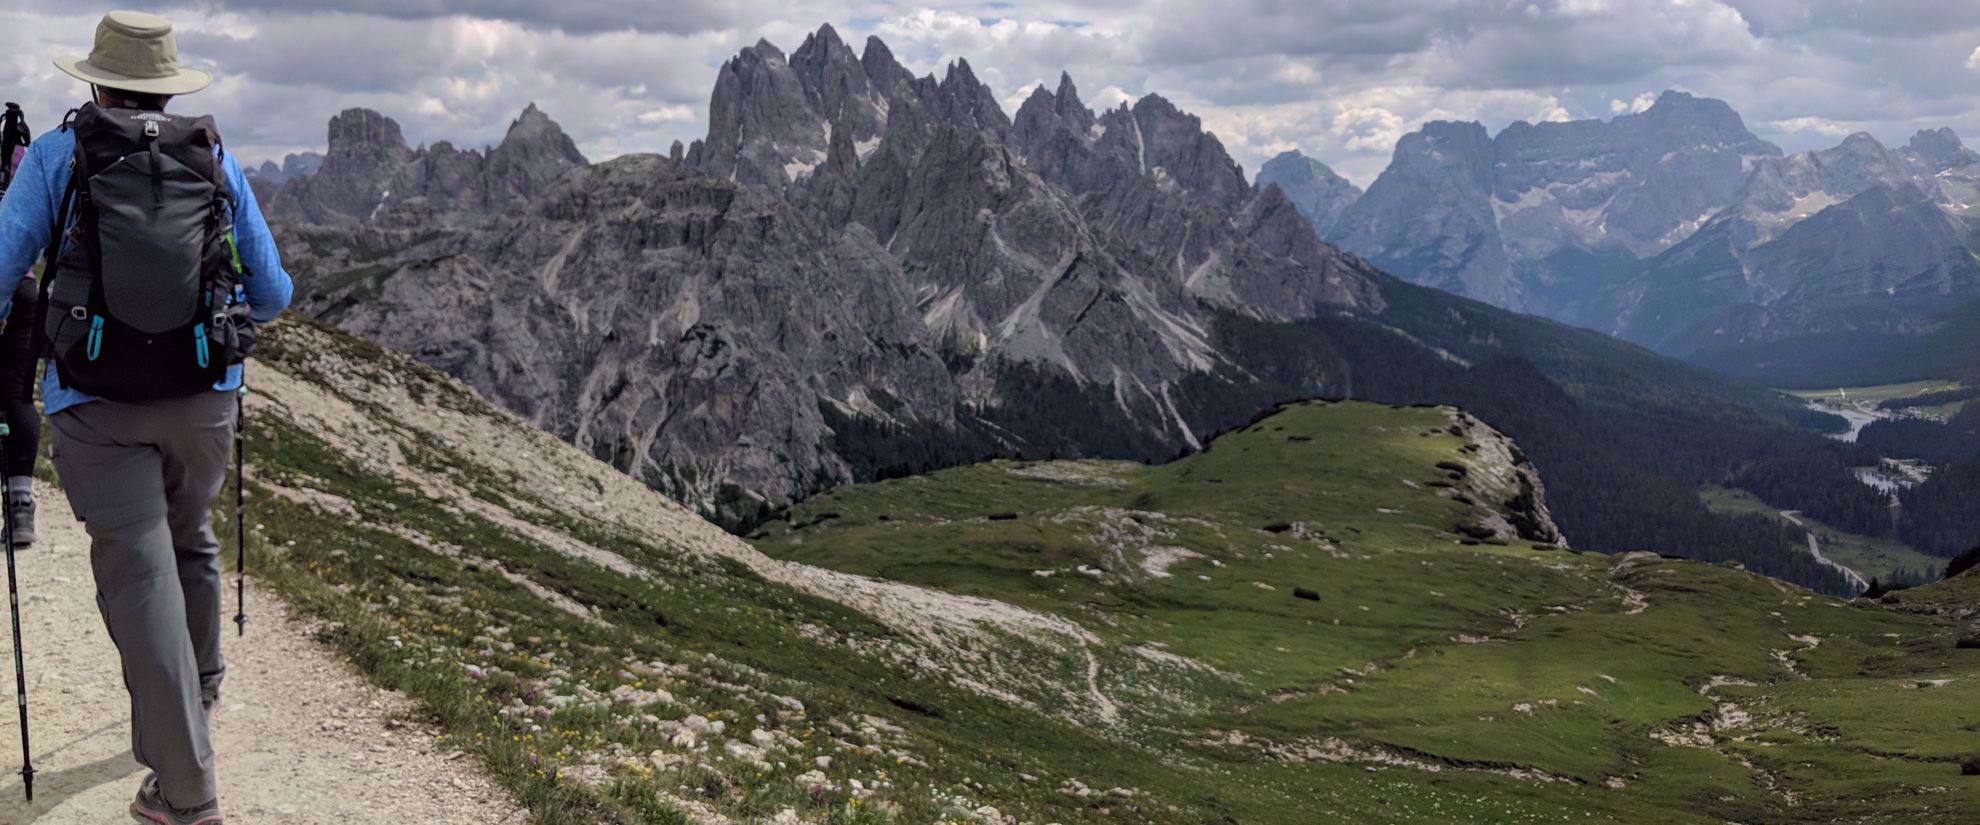 stunning views of italy's rocky alps